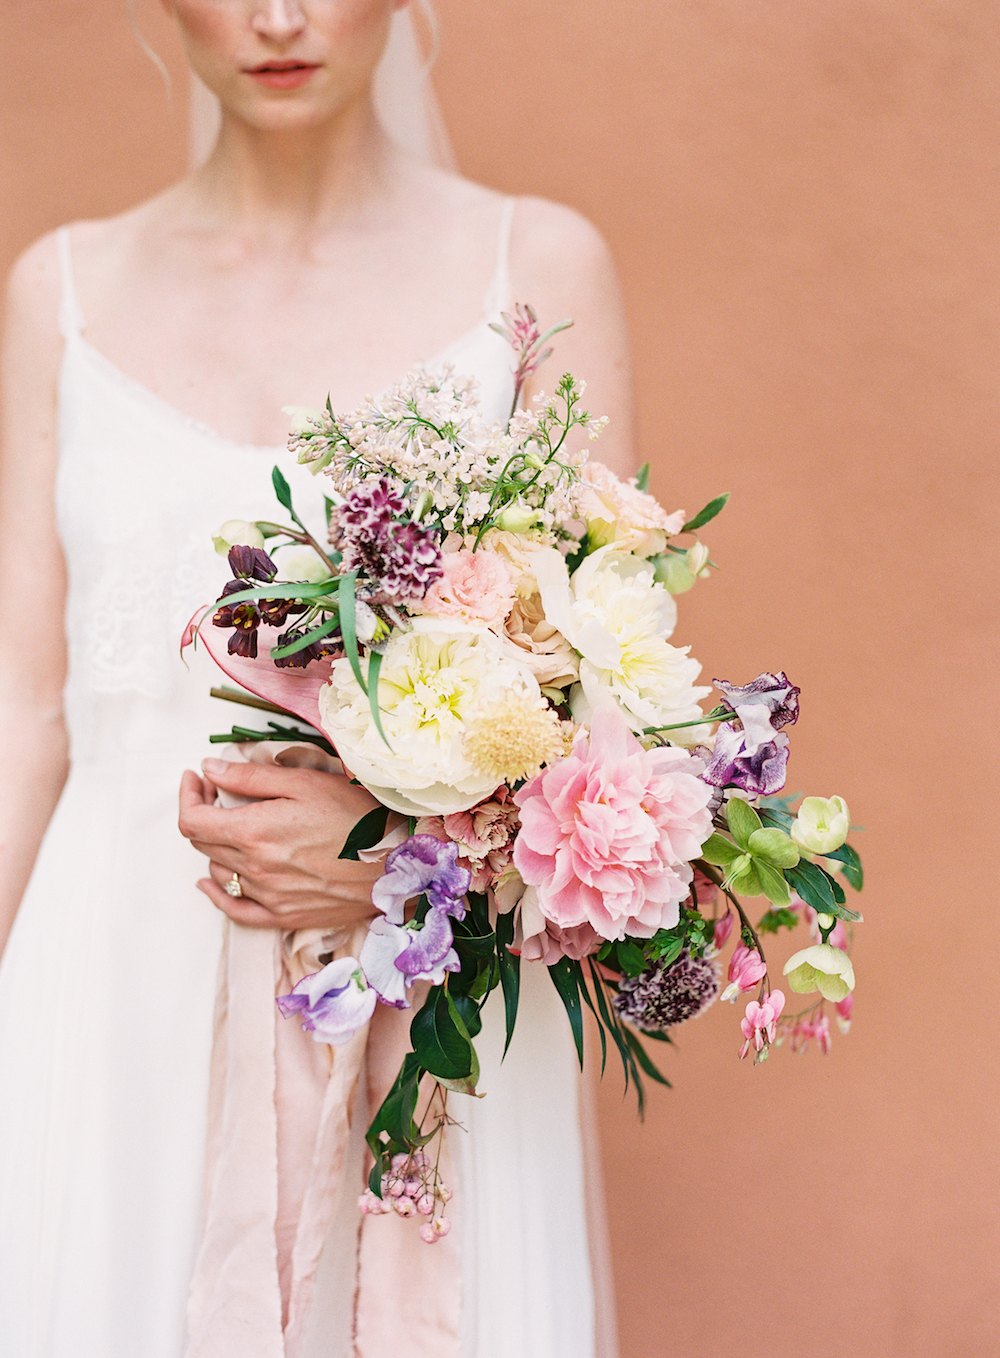 Peony Wedding Bouquet - Wedding Florist in Dallas